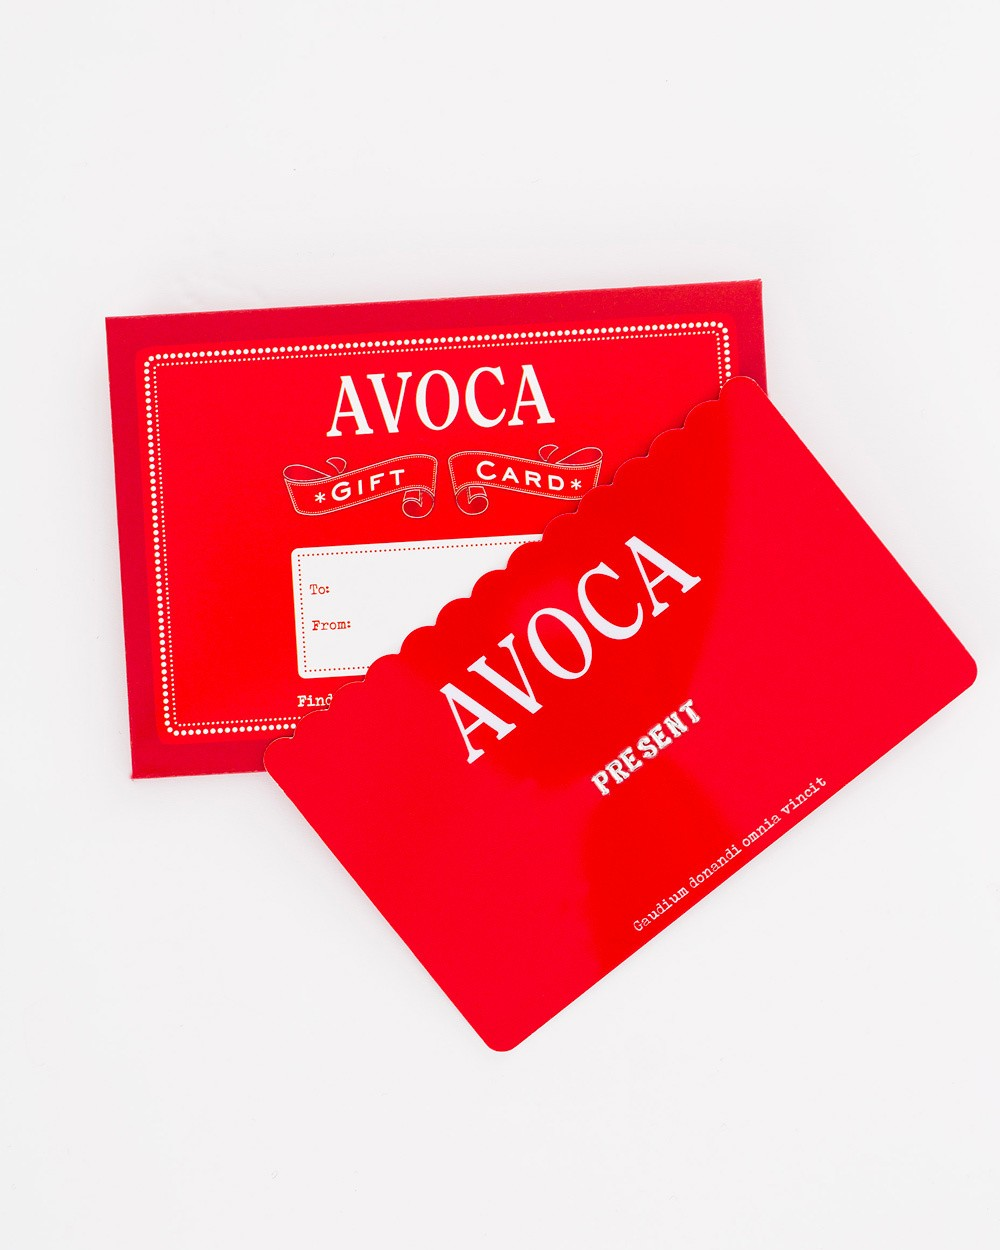 gift card gift cards vouchers avoca